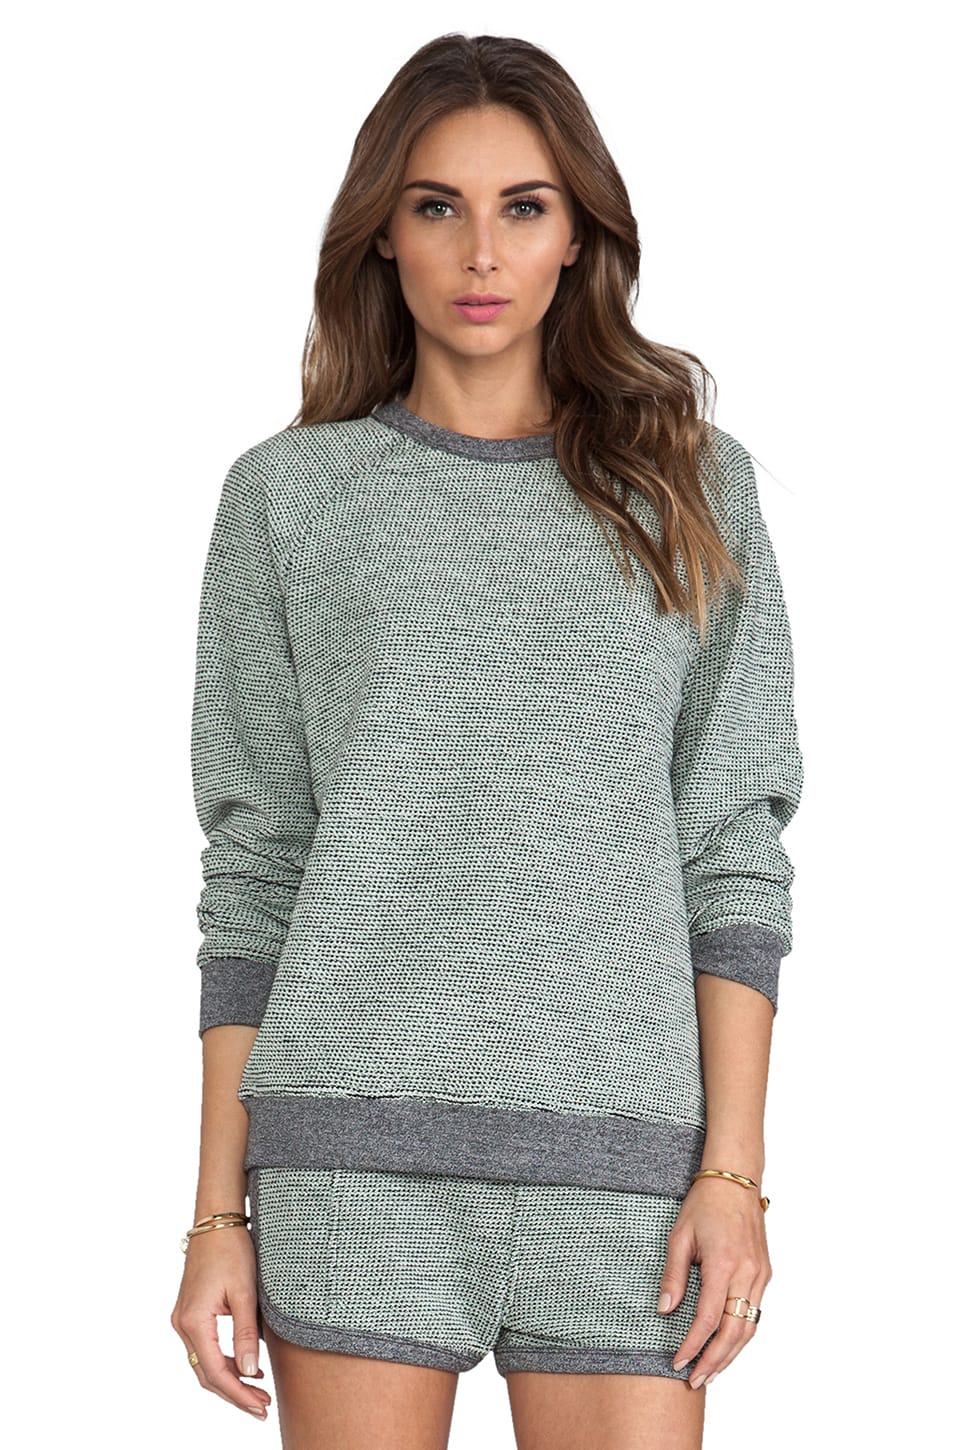 T by Alexander Wang Rainbow French Terry Sweatshirt in Peppermint